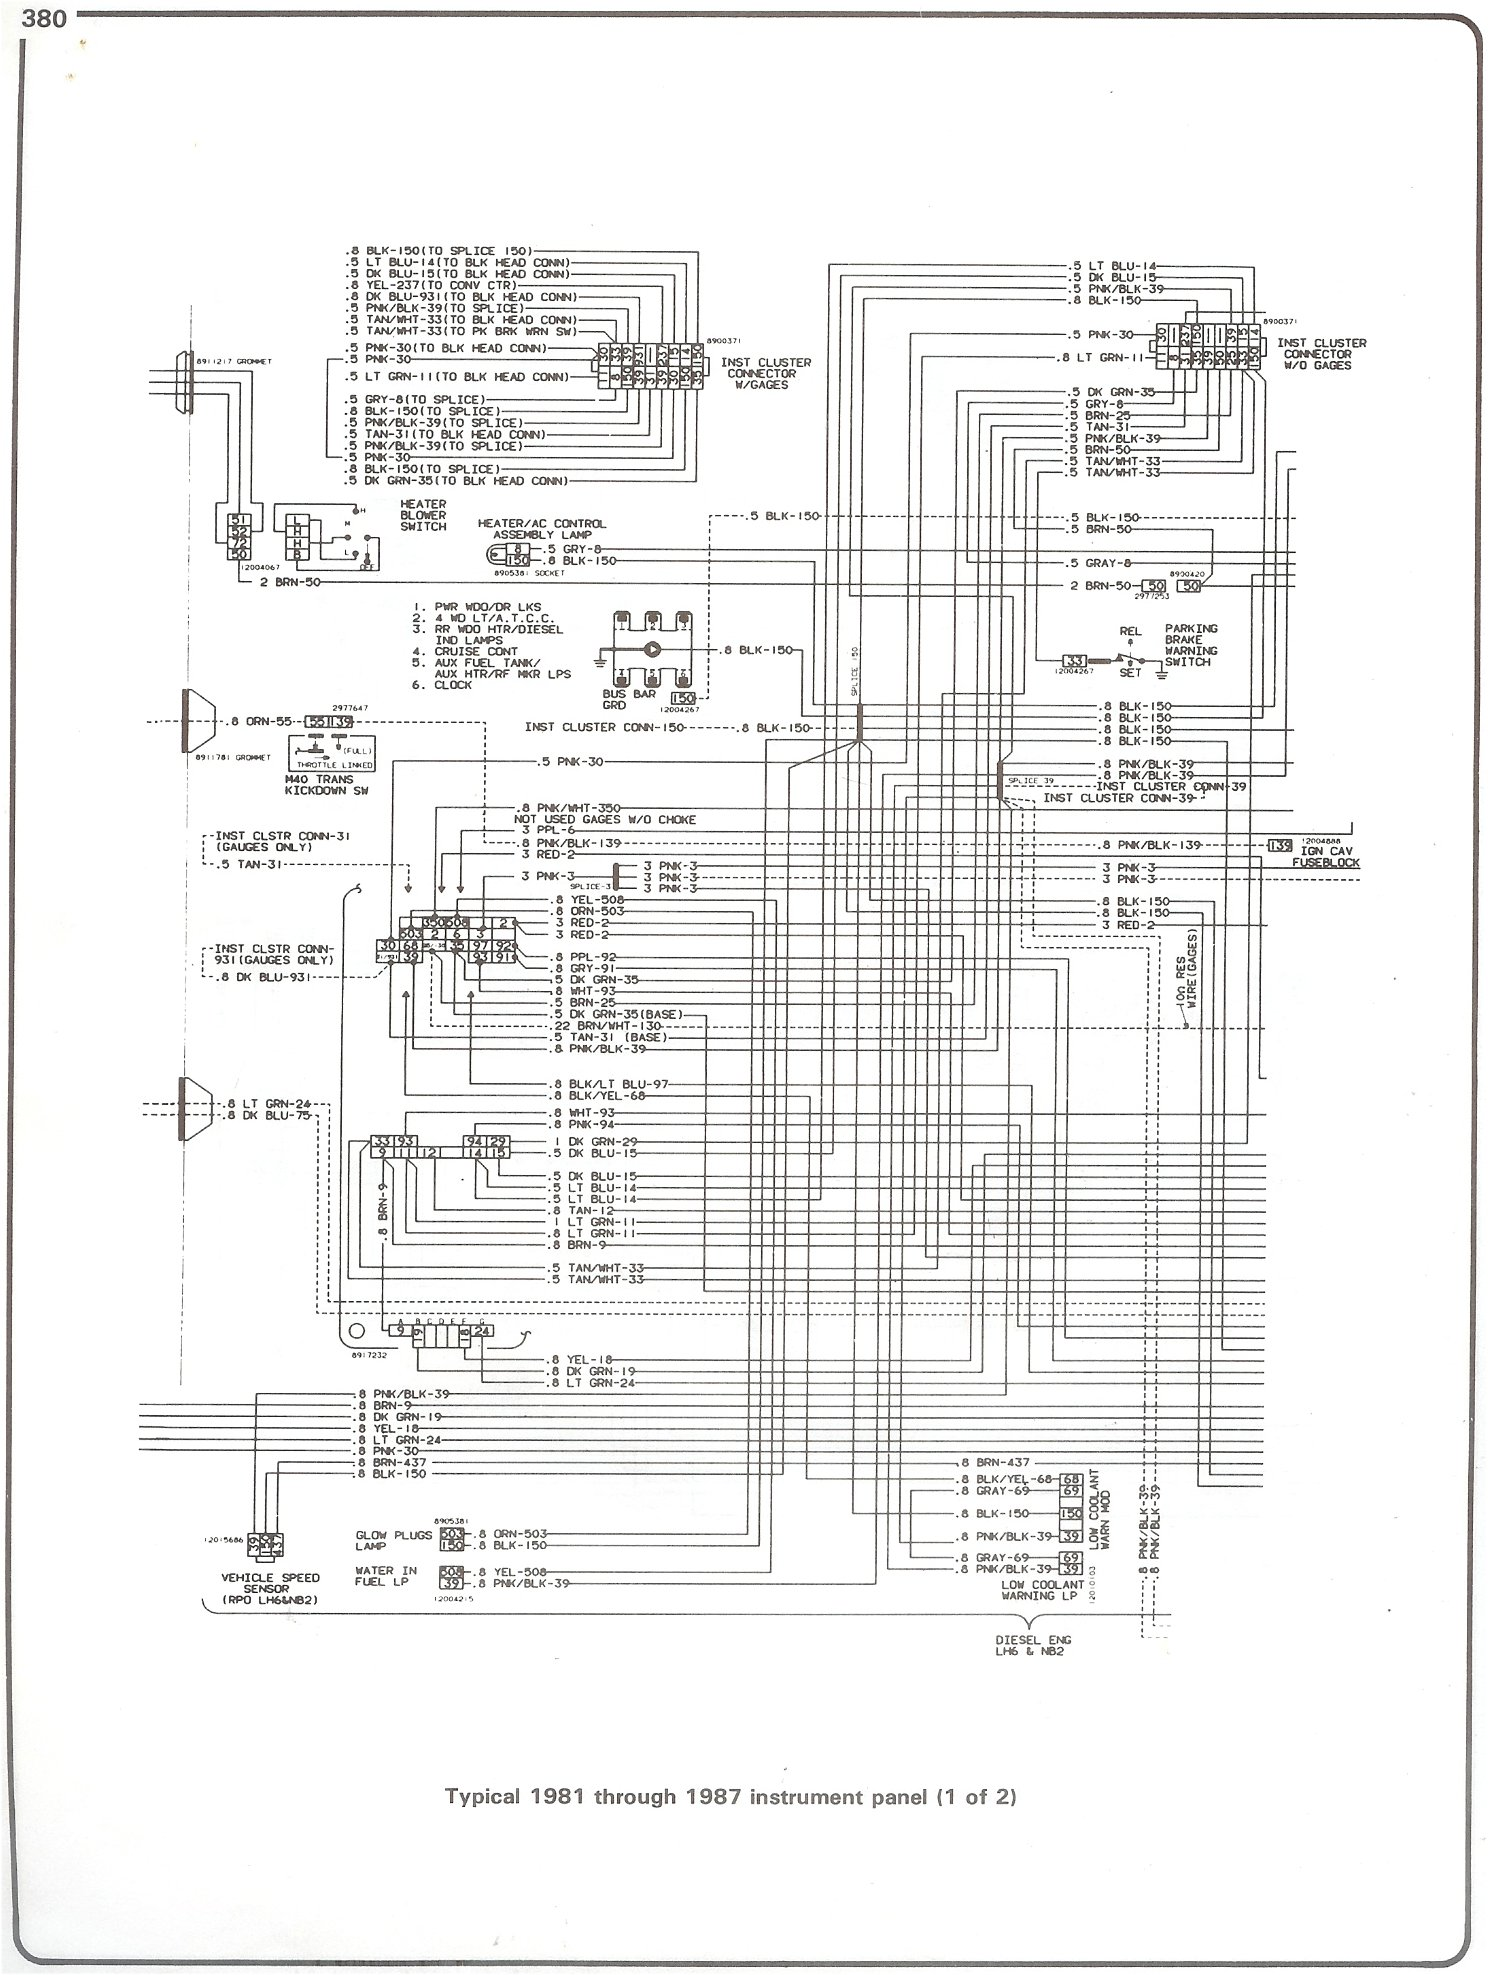 1982 Chevy Truck Wiring Harness - Go Wiring Diagram on circuit diagram, tachometer schematic, vdo tachometer diagram, tachometer repair, tachometer installation, tachometer sensor, turn signal diagram, koolertron backup camera installation diagram, tachometer cable, tachometer connectors, tachometer wiring list, tachometer wiring function, fuse block diagram,